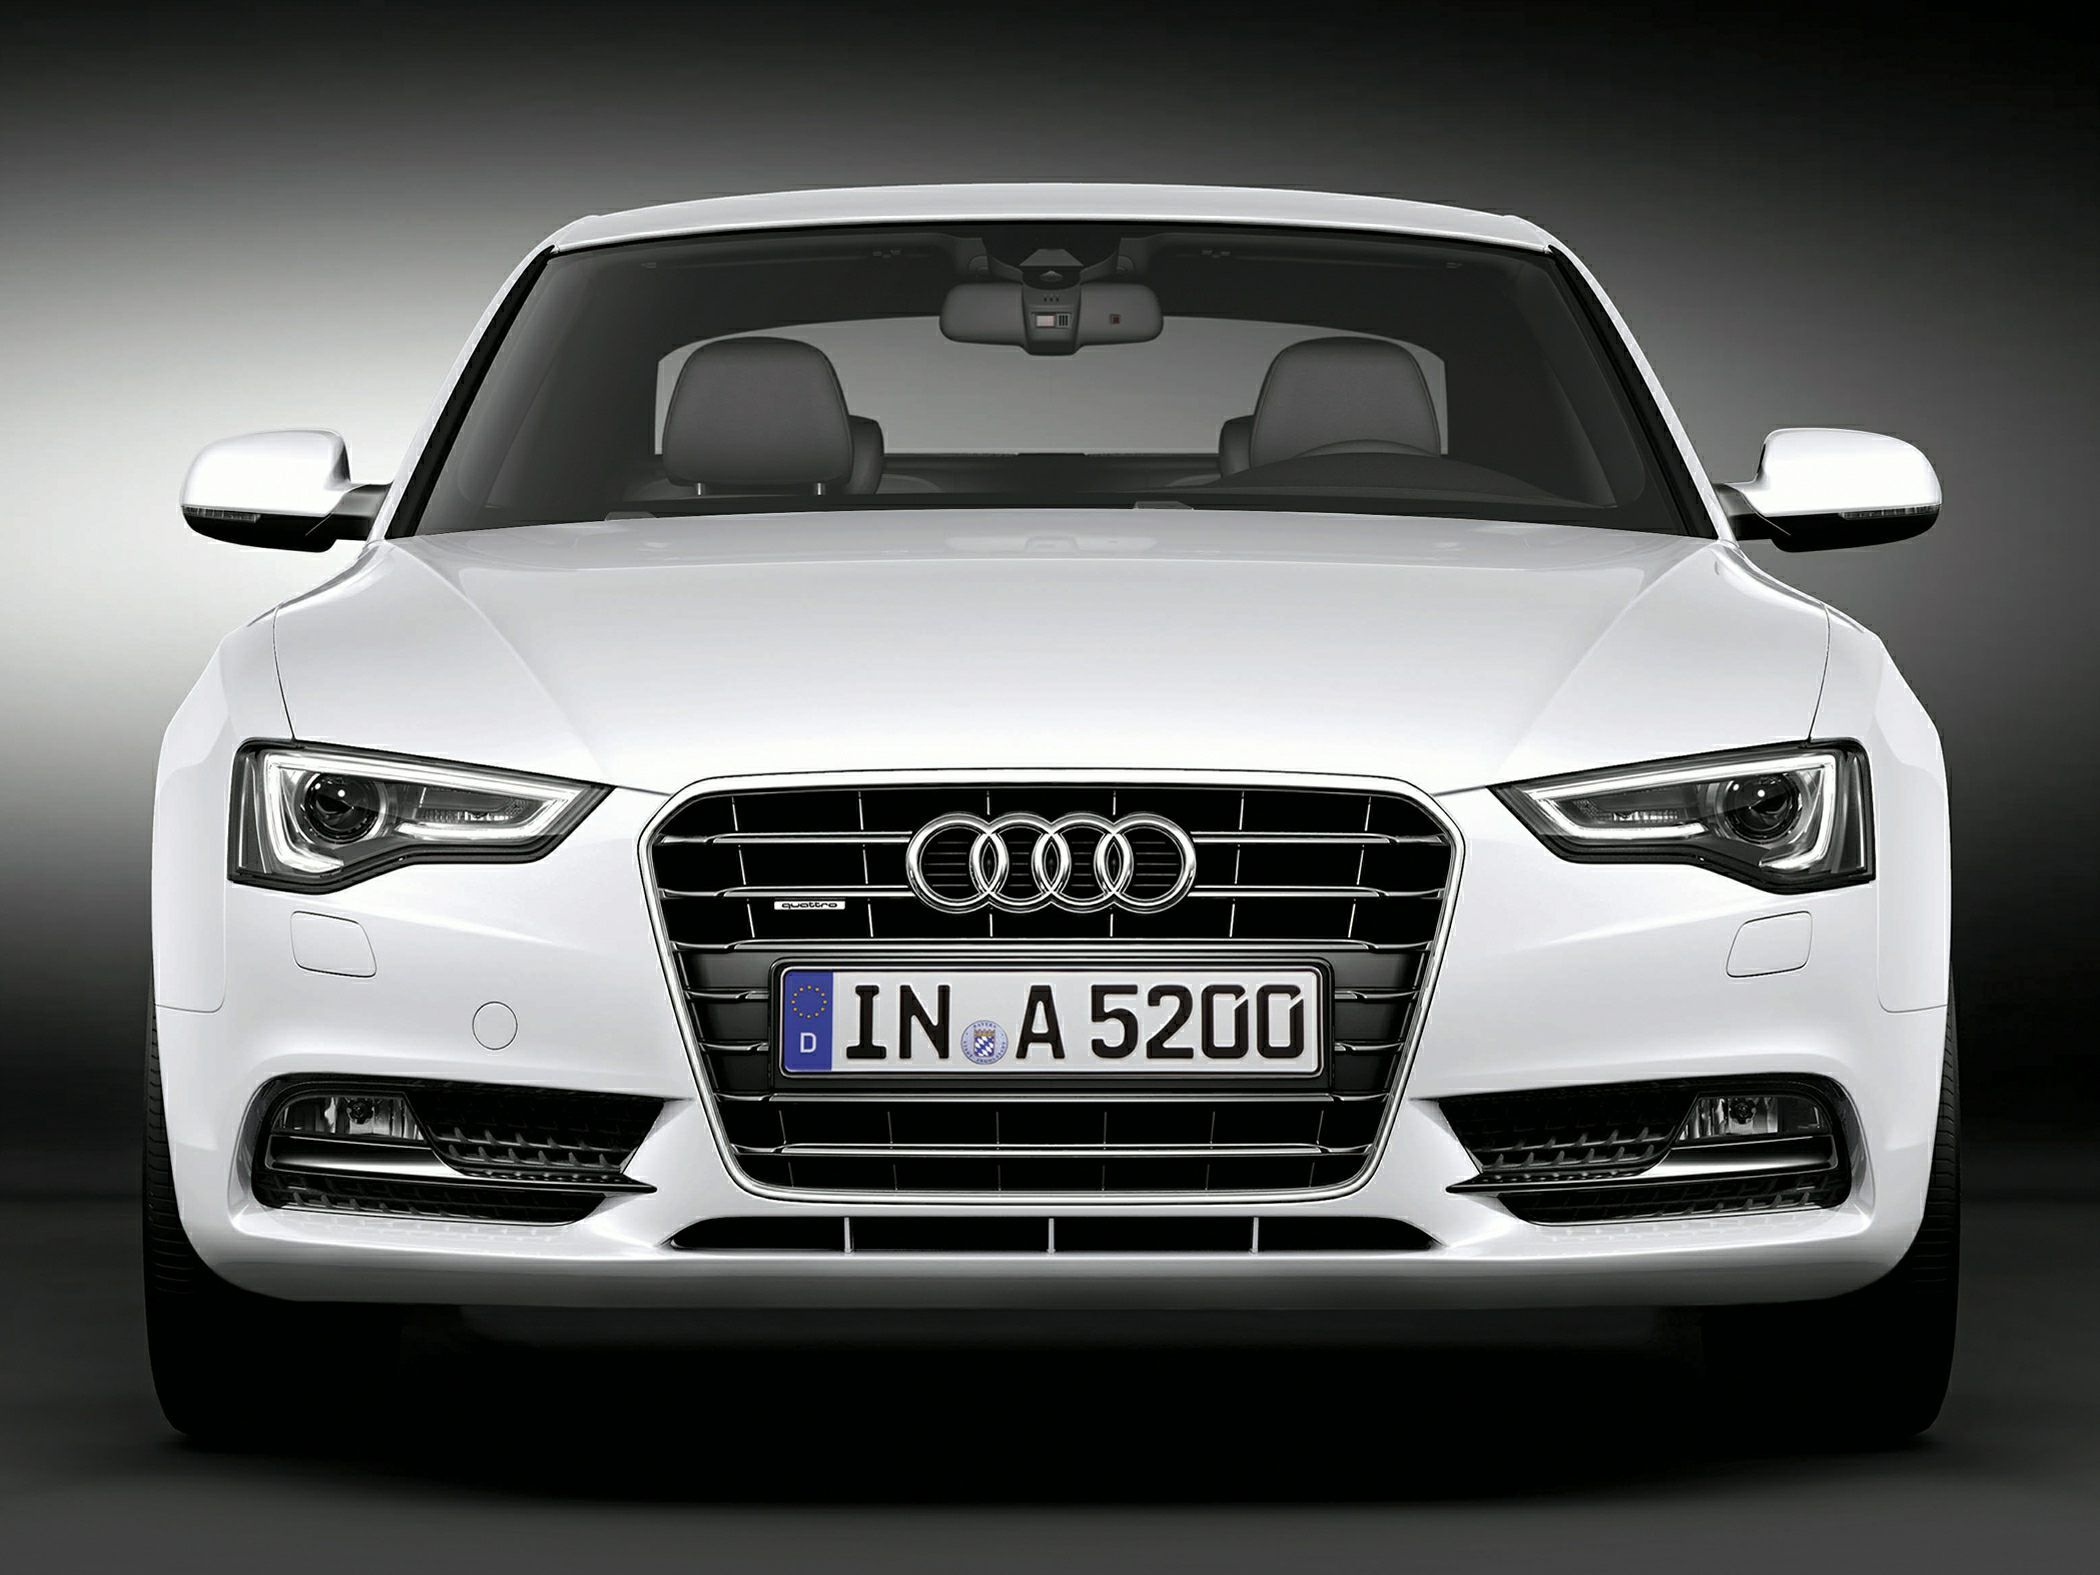 2014 Audi A5 Coupe Hd Wallpapers Ultra Hd Car Wallpapers Audi A5 A5 Cabriolet Audi S5